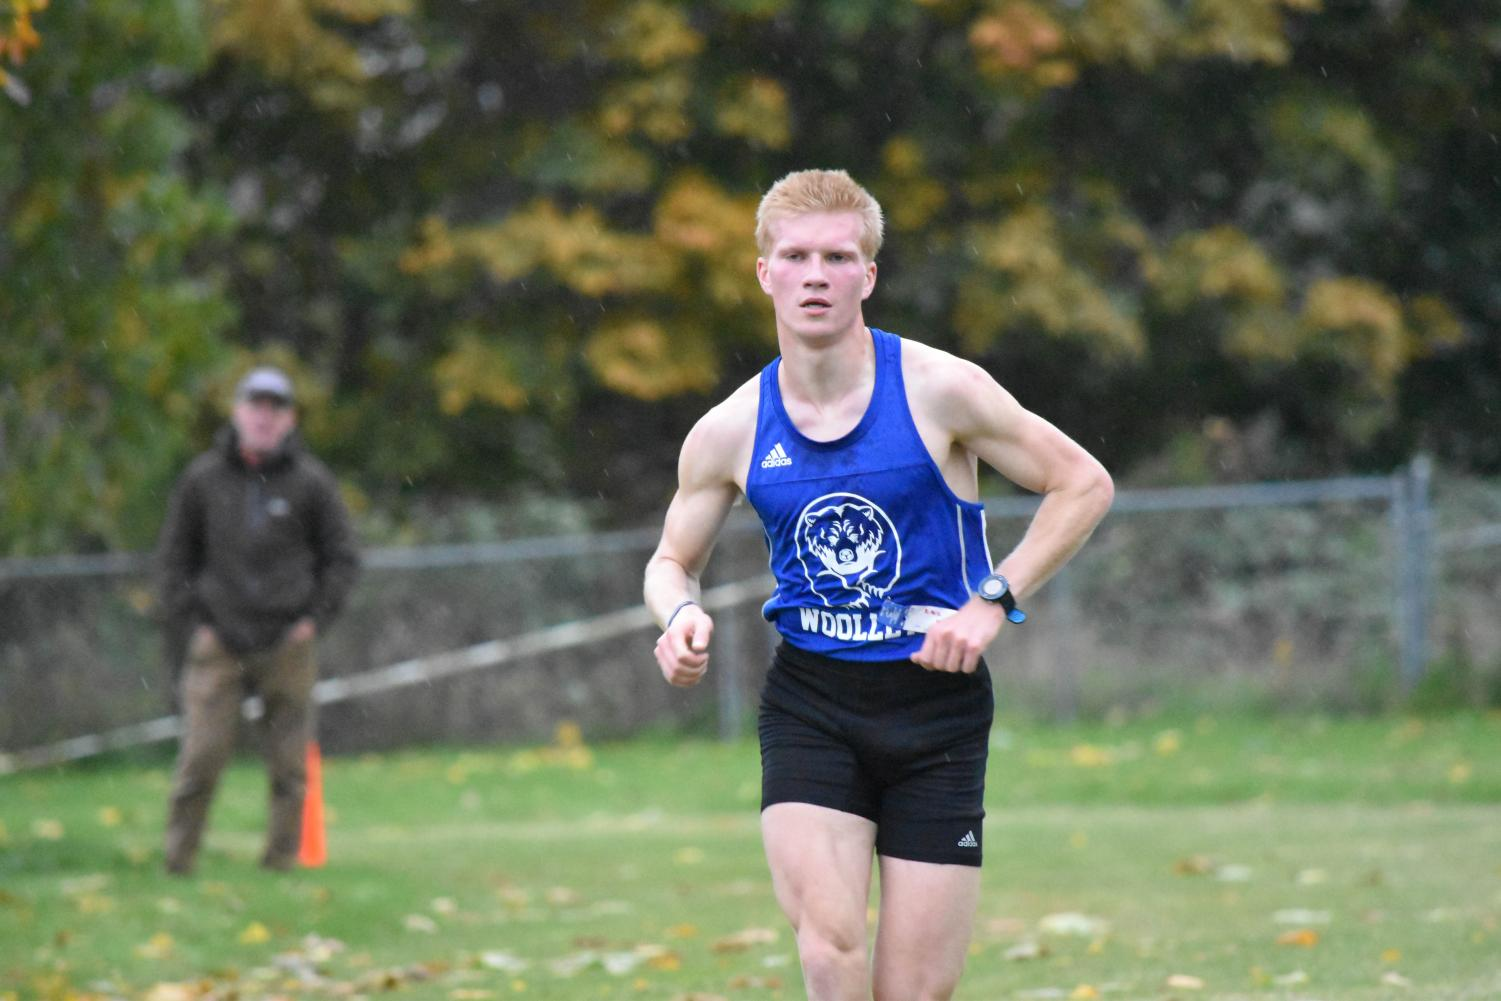 Senior Rafe Holz took home first place in Bellingham last week. Now Holz and the rest of the team prepares for Districts, their last stop before State.